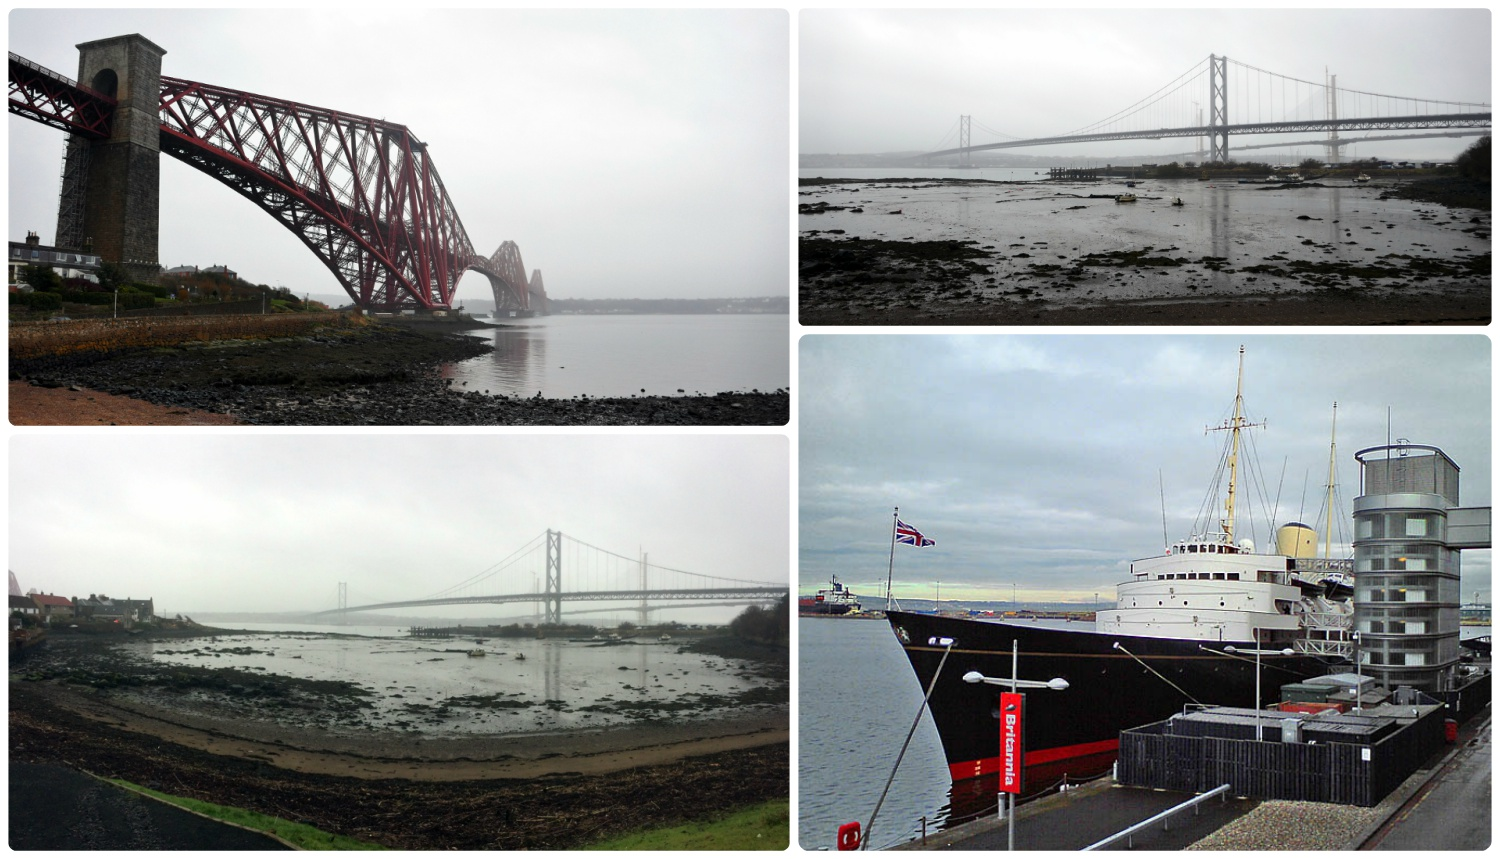 Clockwise: Forth Bridge rail bridge, old and new Forth Bridge, Royal Yacht of Britannia.